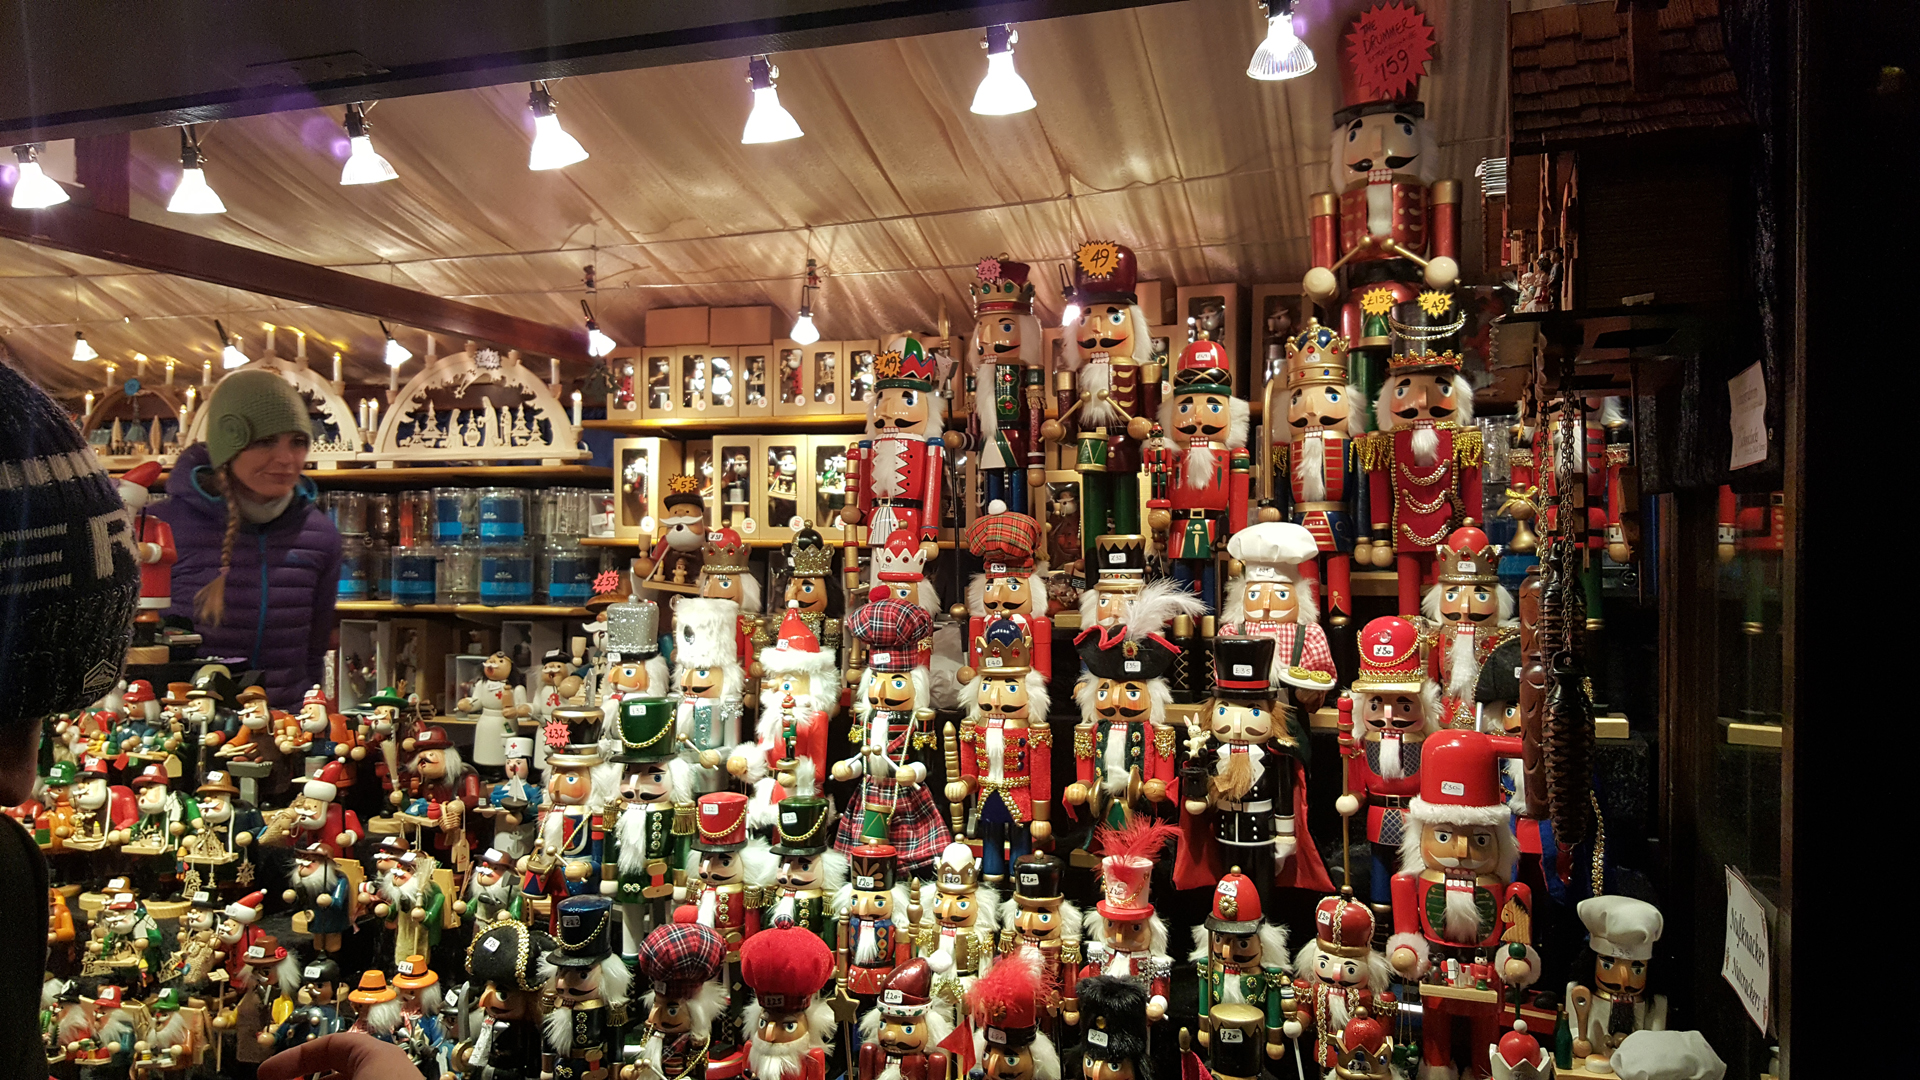 Edinburgh's Christmas market stalls with toy soldiers and Russian dolls.